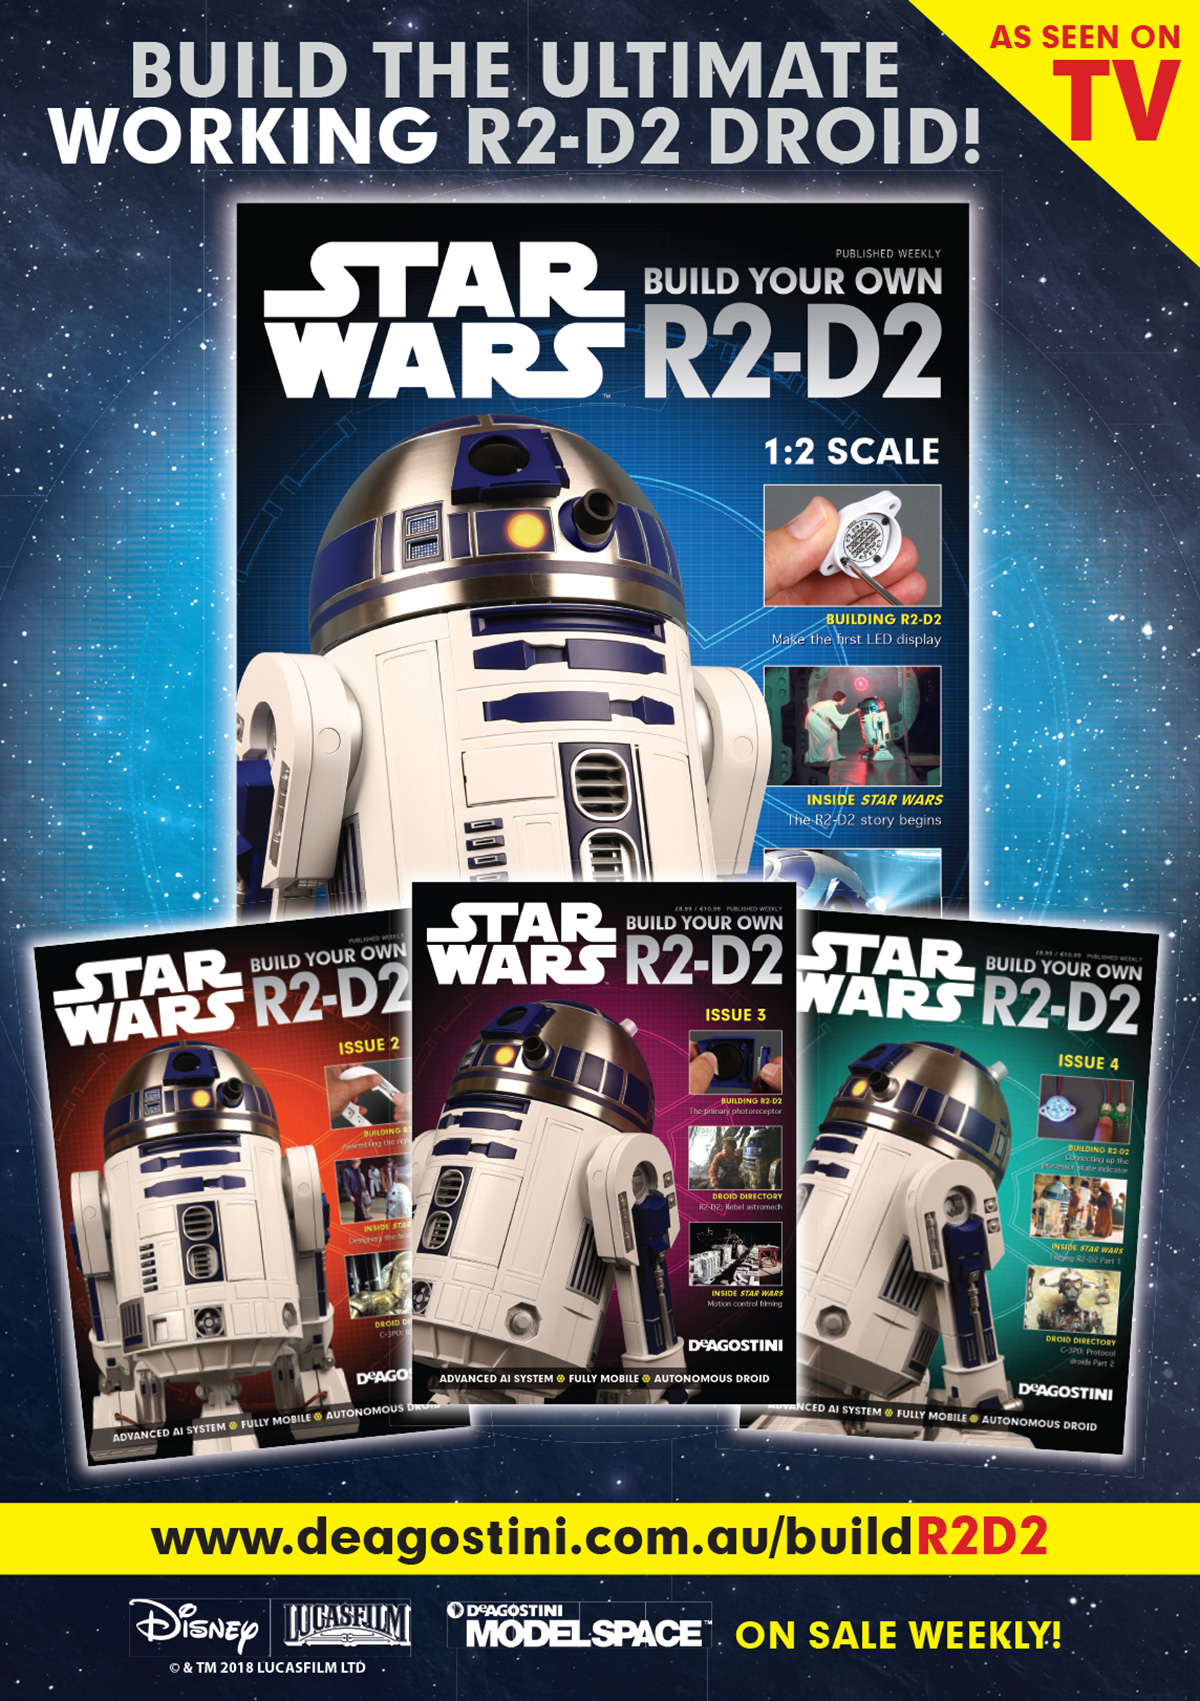 poster design for R2D2 marketing materials